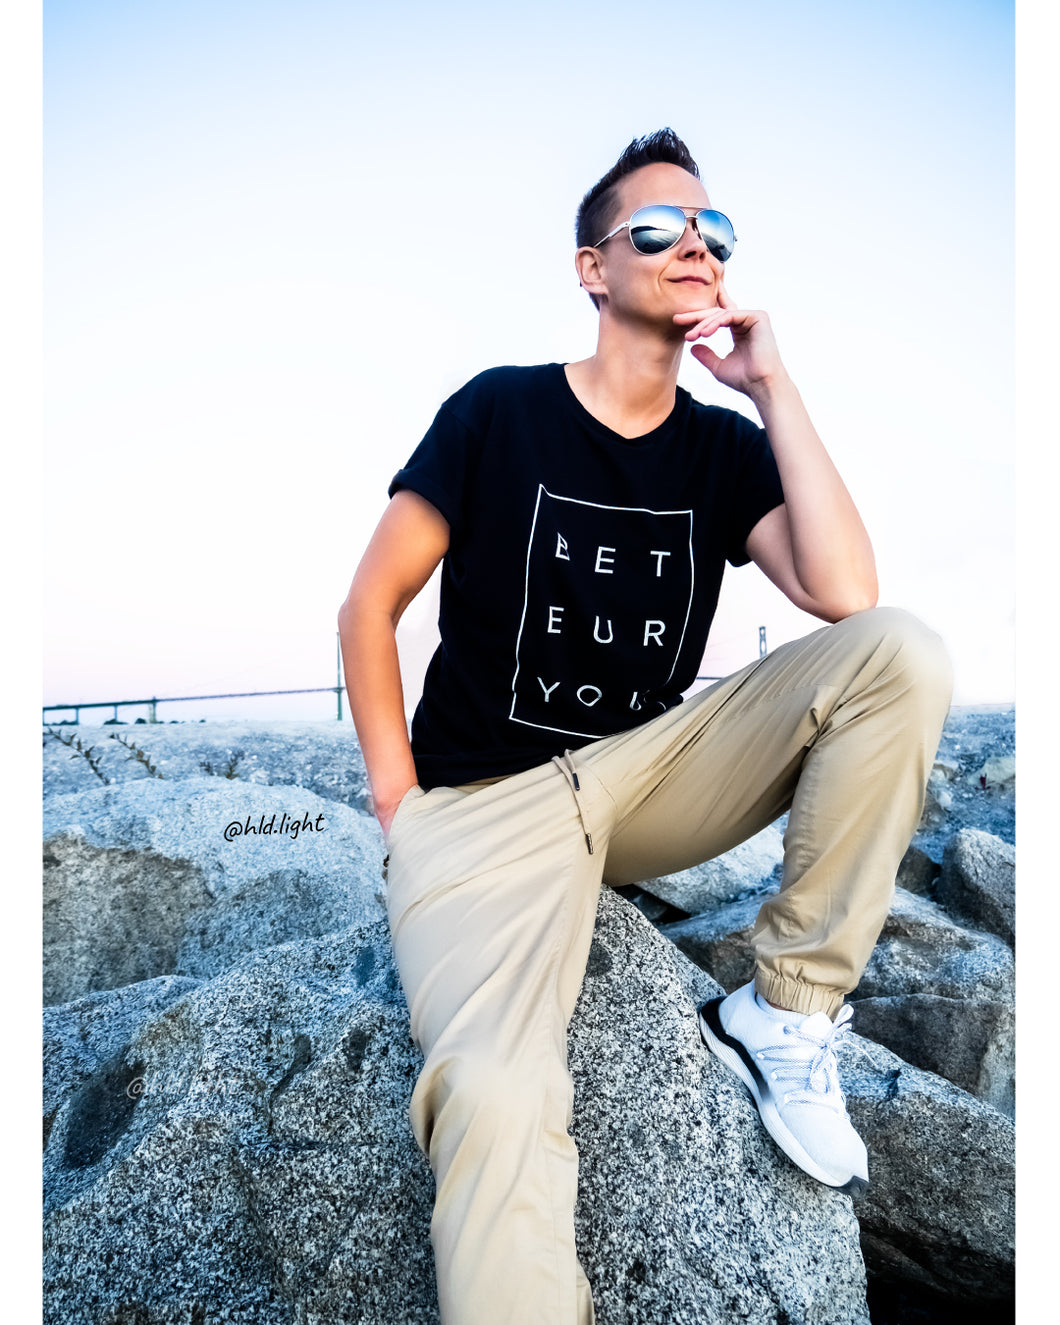 Tomboy-Model-Sunset-Beach-Tomboy-Style-Short-Hair-Aviator-Sunglasses-Black-T-shirt-Be-You-Puzzle-Calvin-Klein-Khaki-Joggers-White-Puma-Sneakers-Gender-Neutral-Androgynous-Fashion